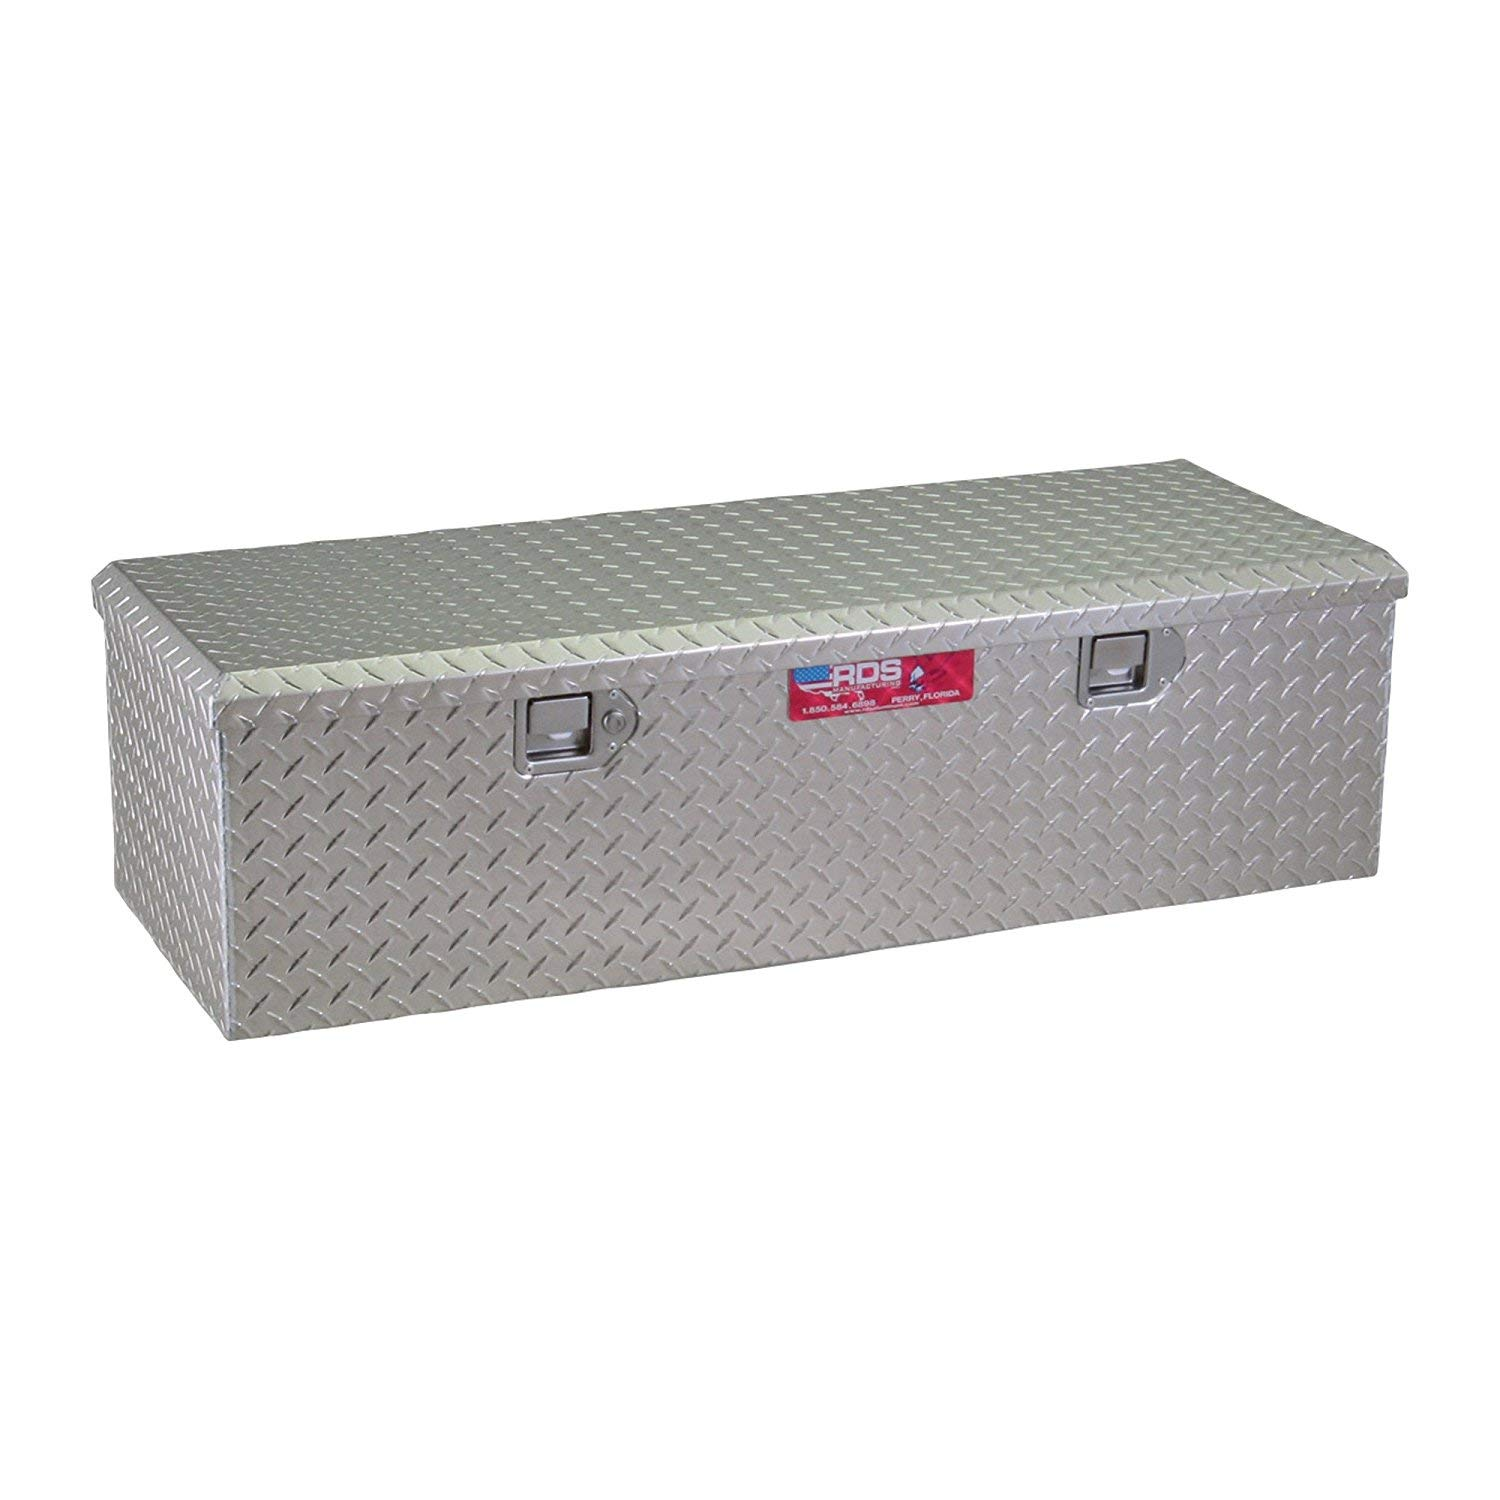 60in Aluminum Diamond Plate Storage Container Box with Lock